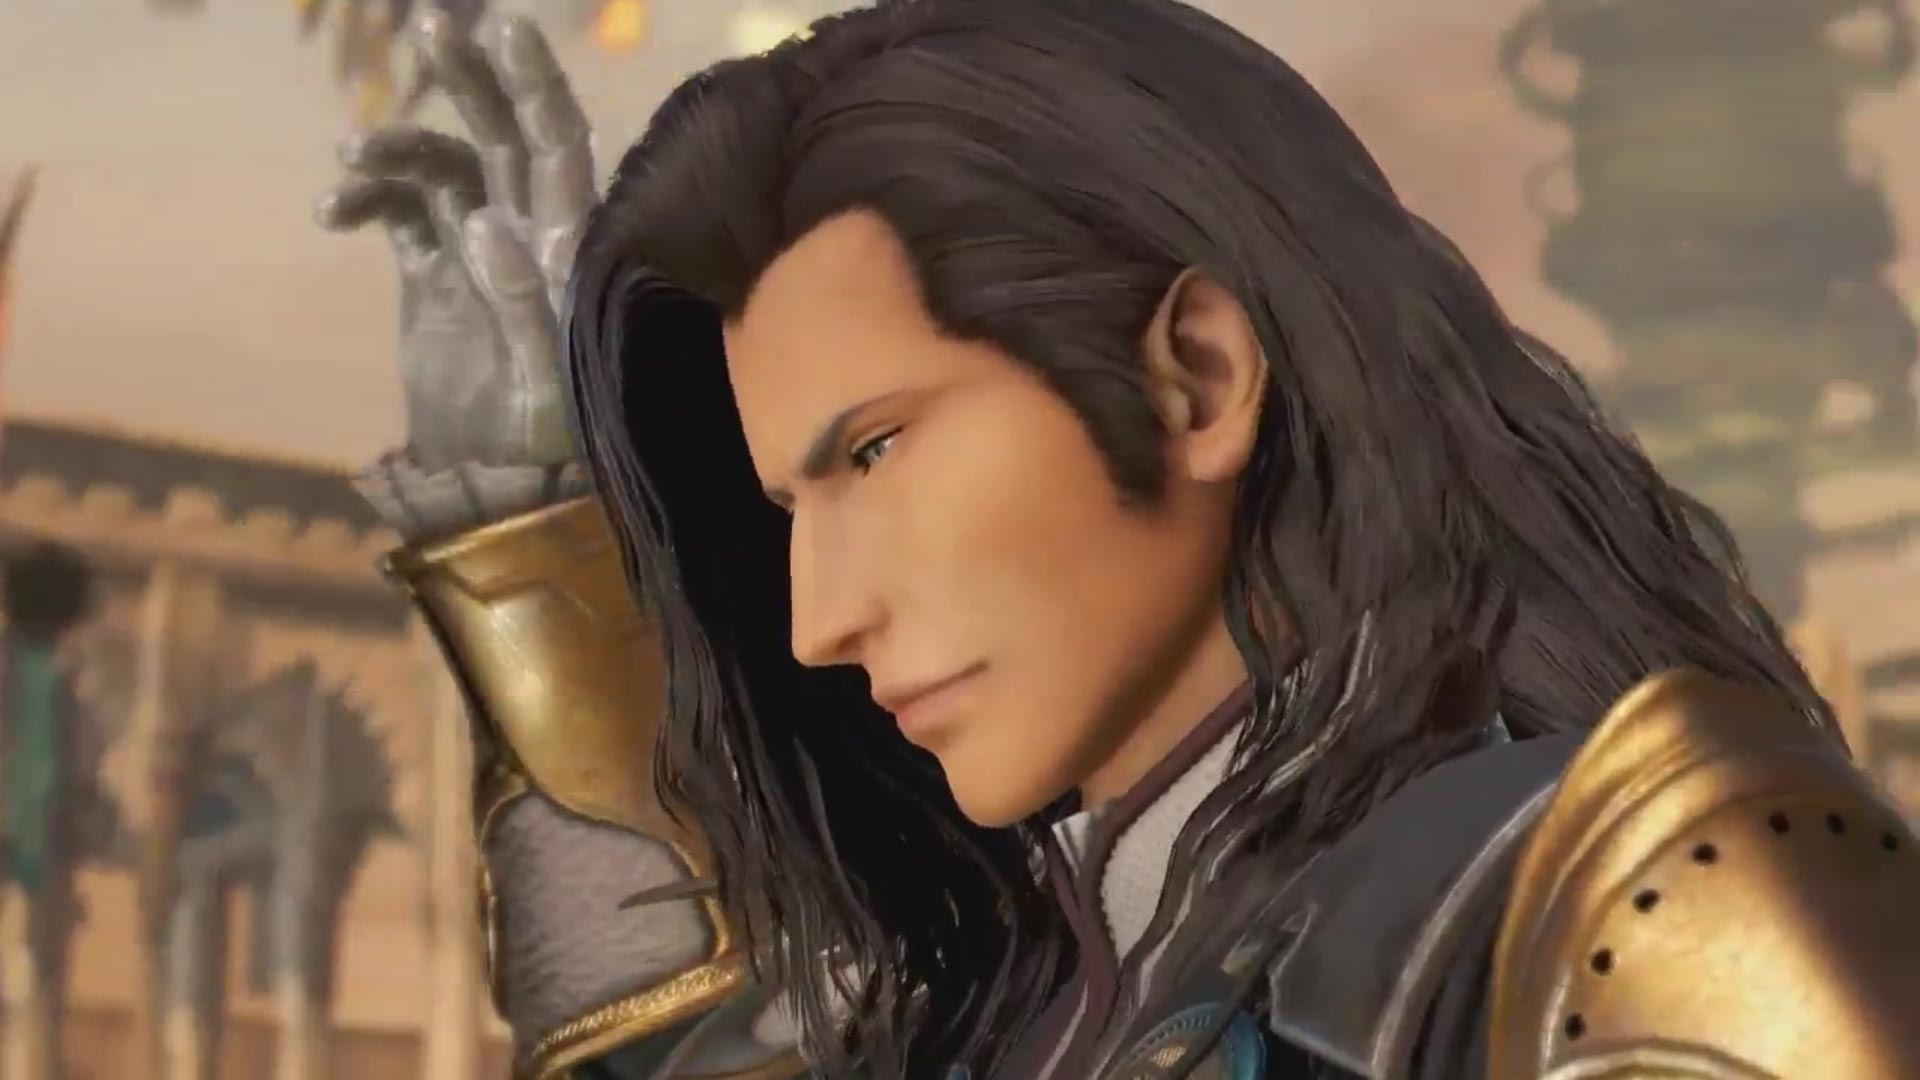 Dissidia Final Fantasy NT Vayne Reveal 8 out of 12 image gallery